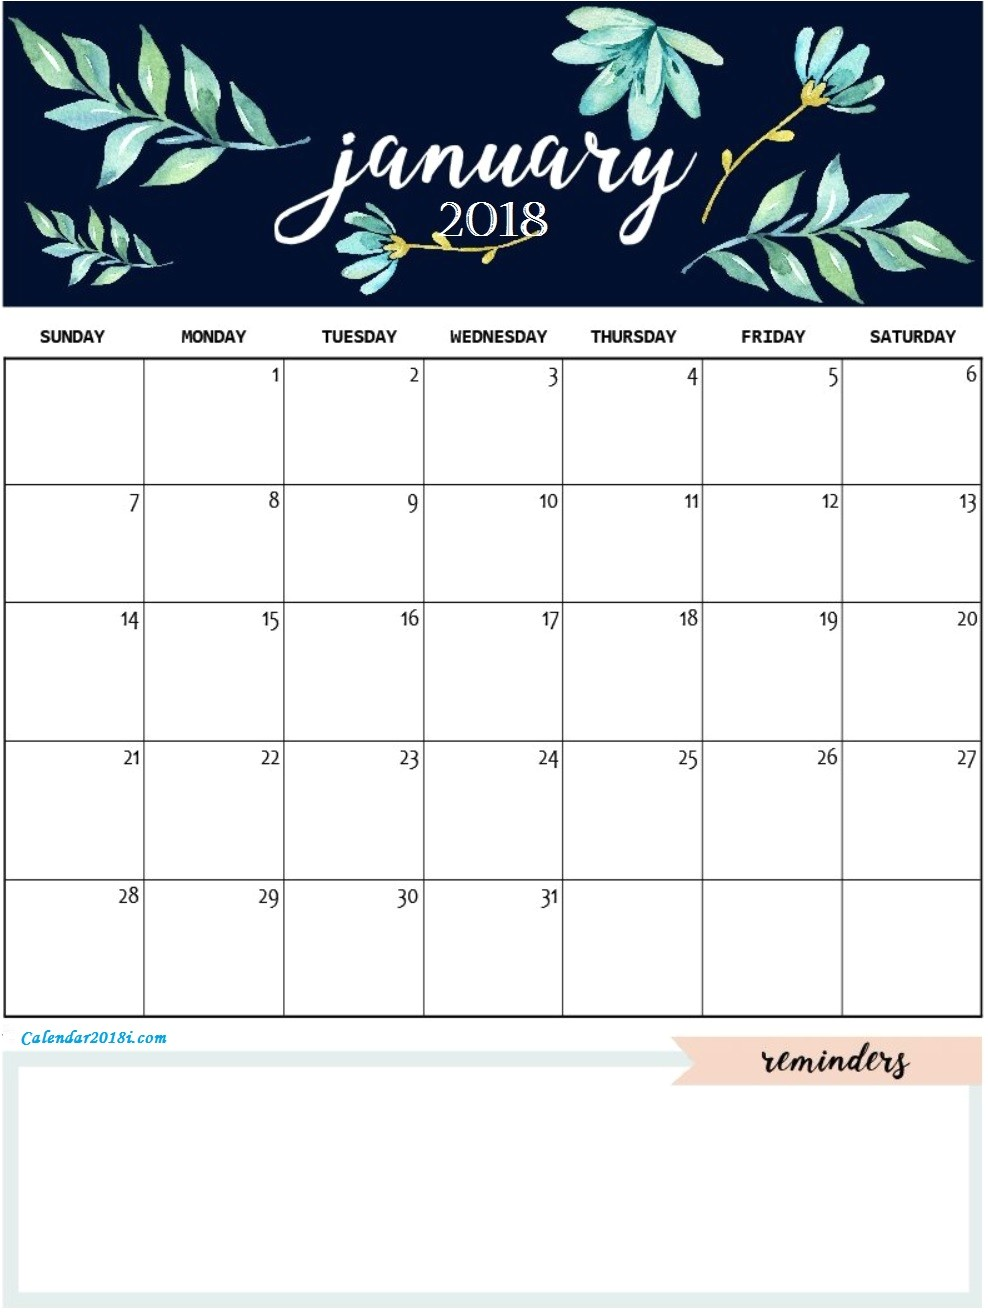 january 2018 personalized calendar